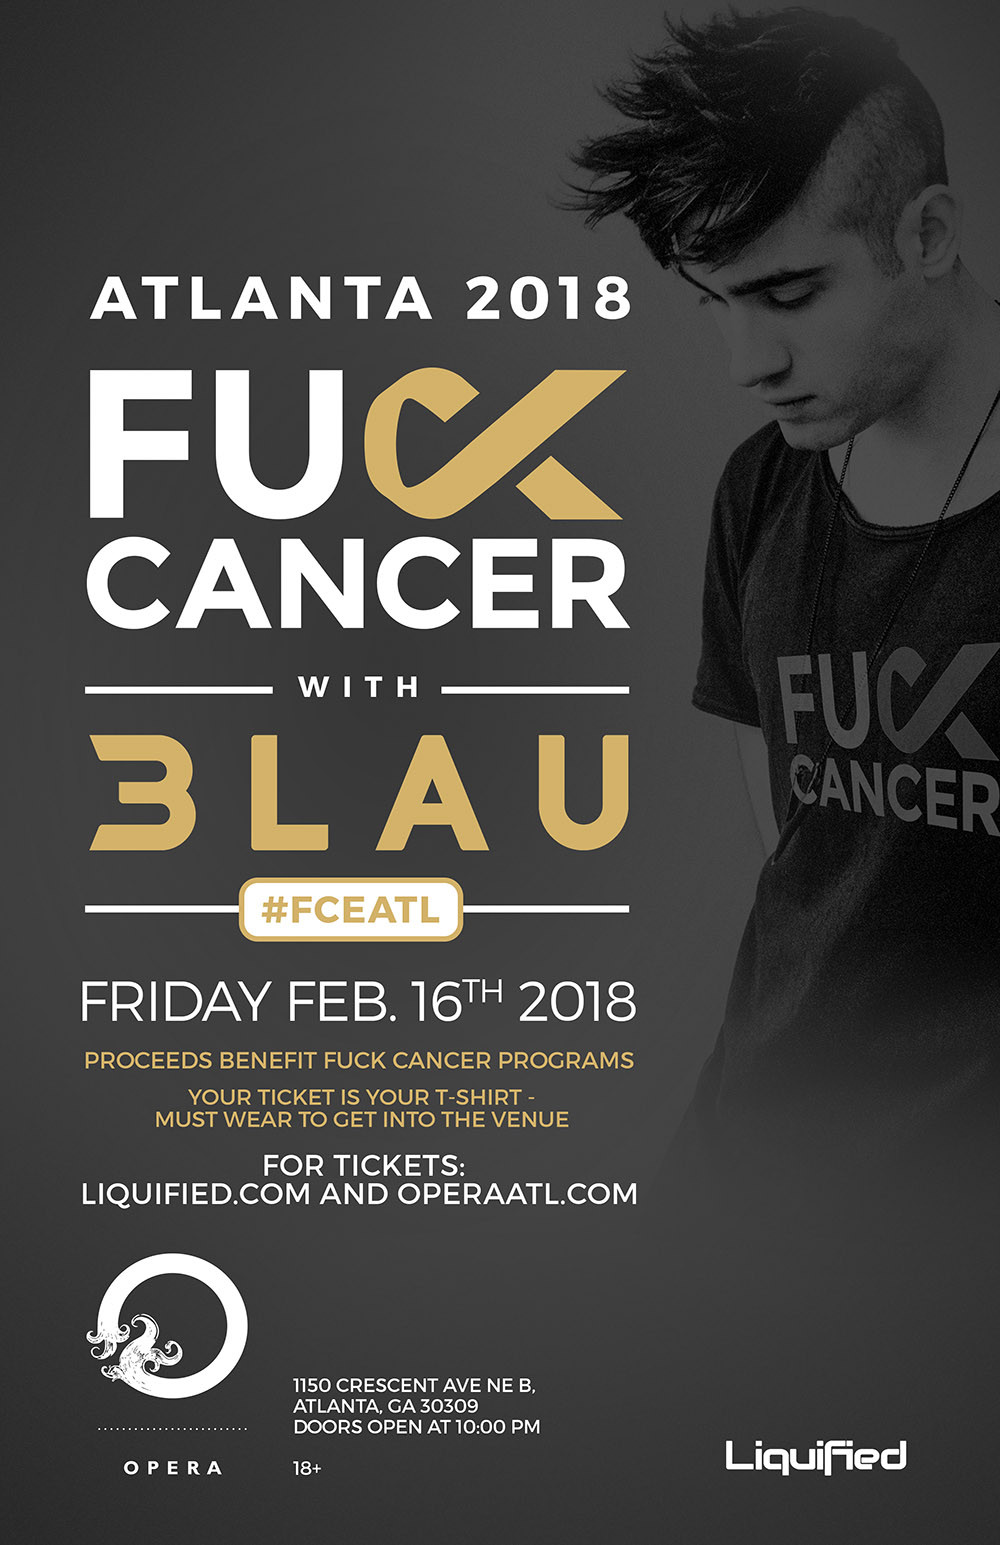 FCancer Hosts Atlanta Fundraiser Featuring 3LAU on February 16th